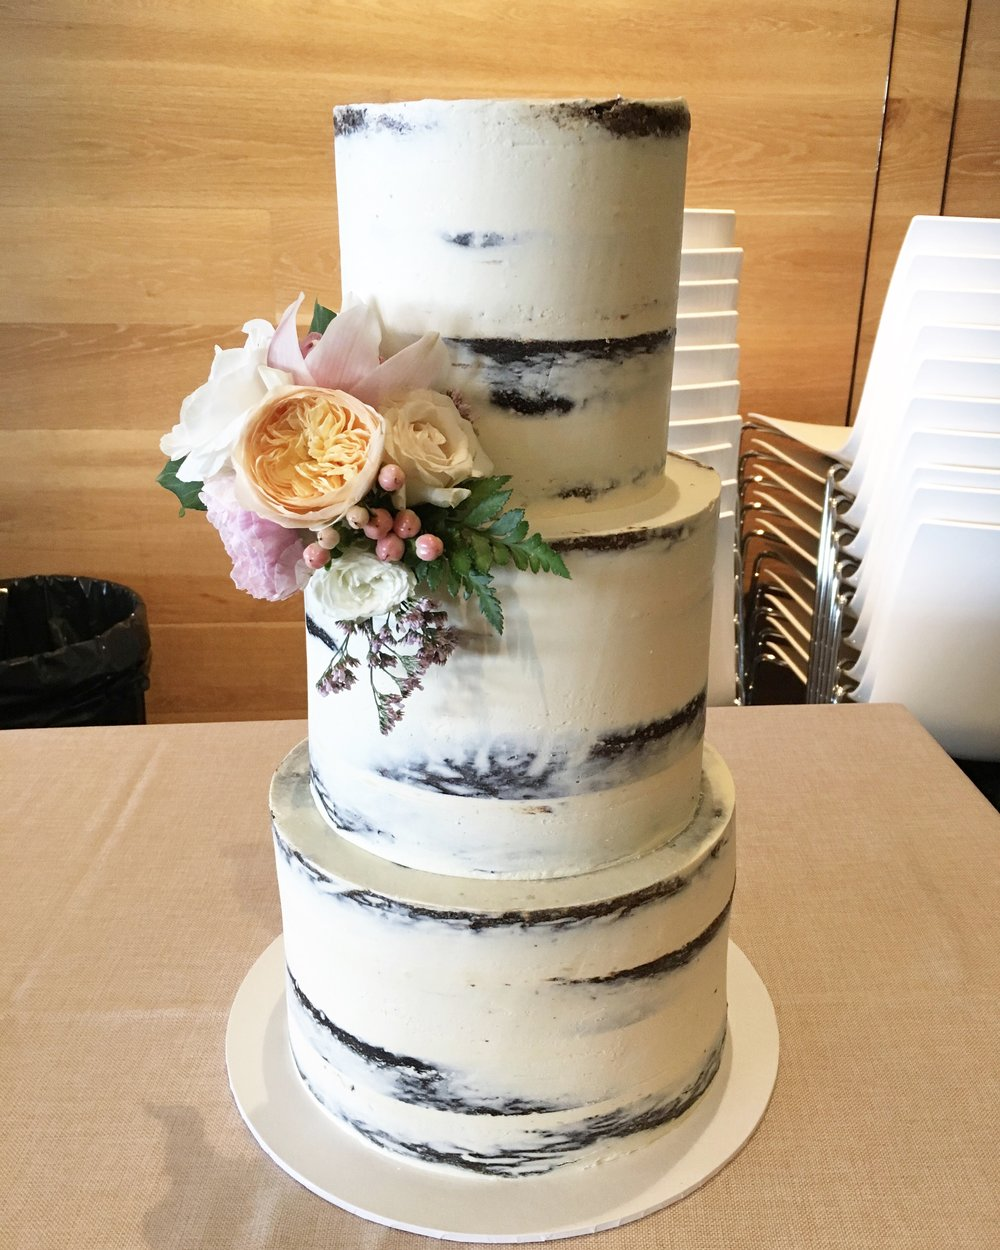 Naked Cake with Bright Flowers